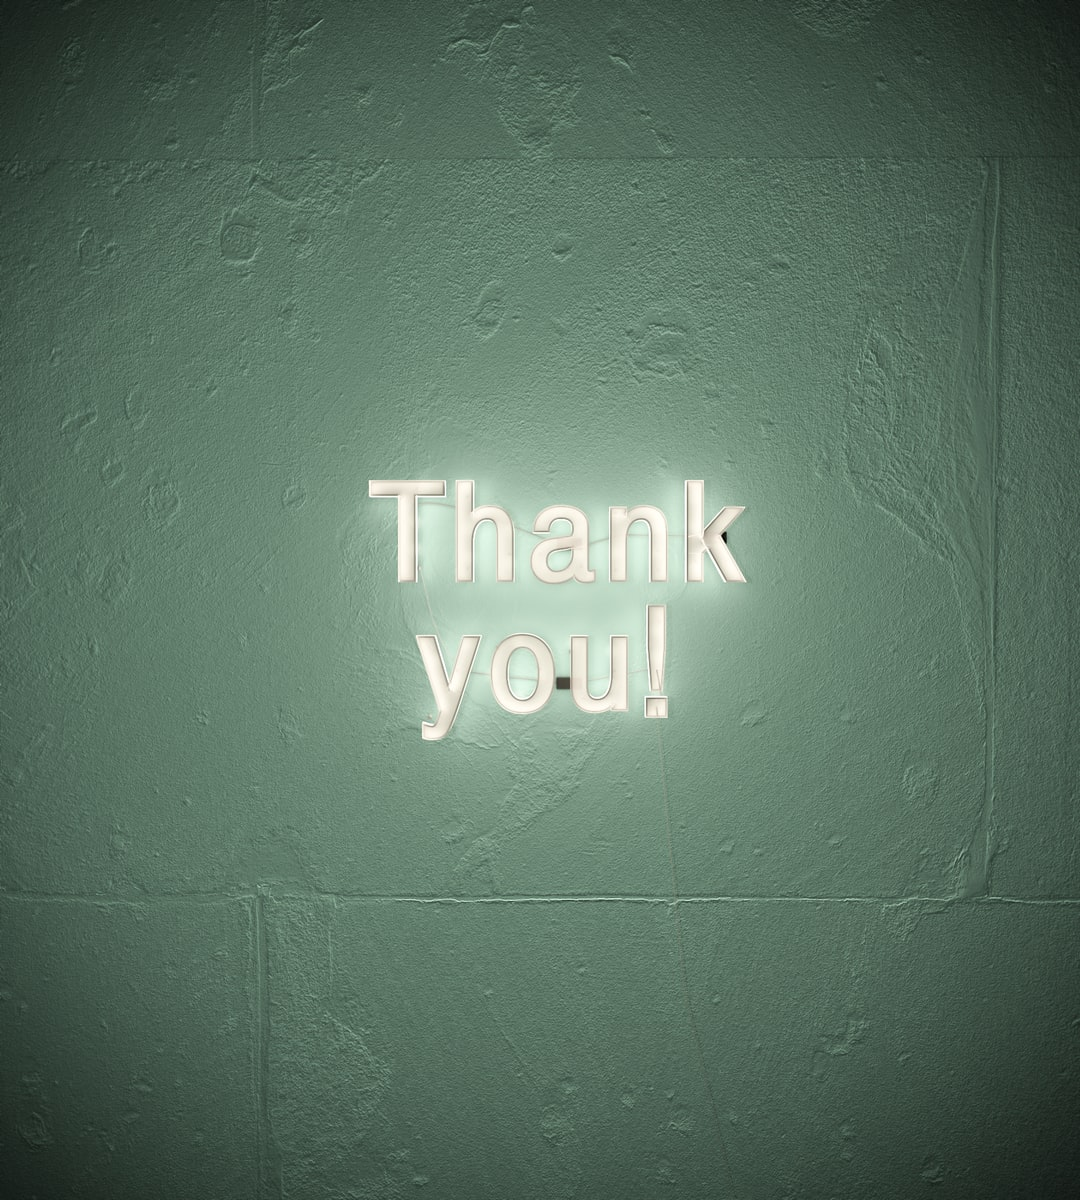 900 Thank You Images Download Hd Pictures Photos On Unsplash